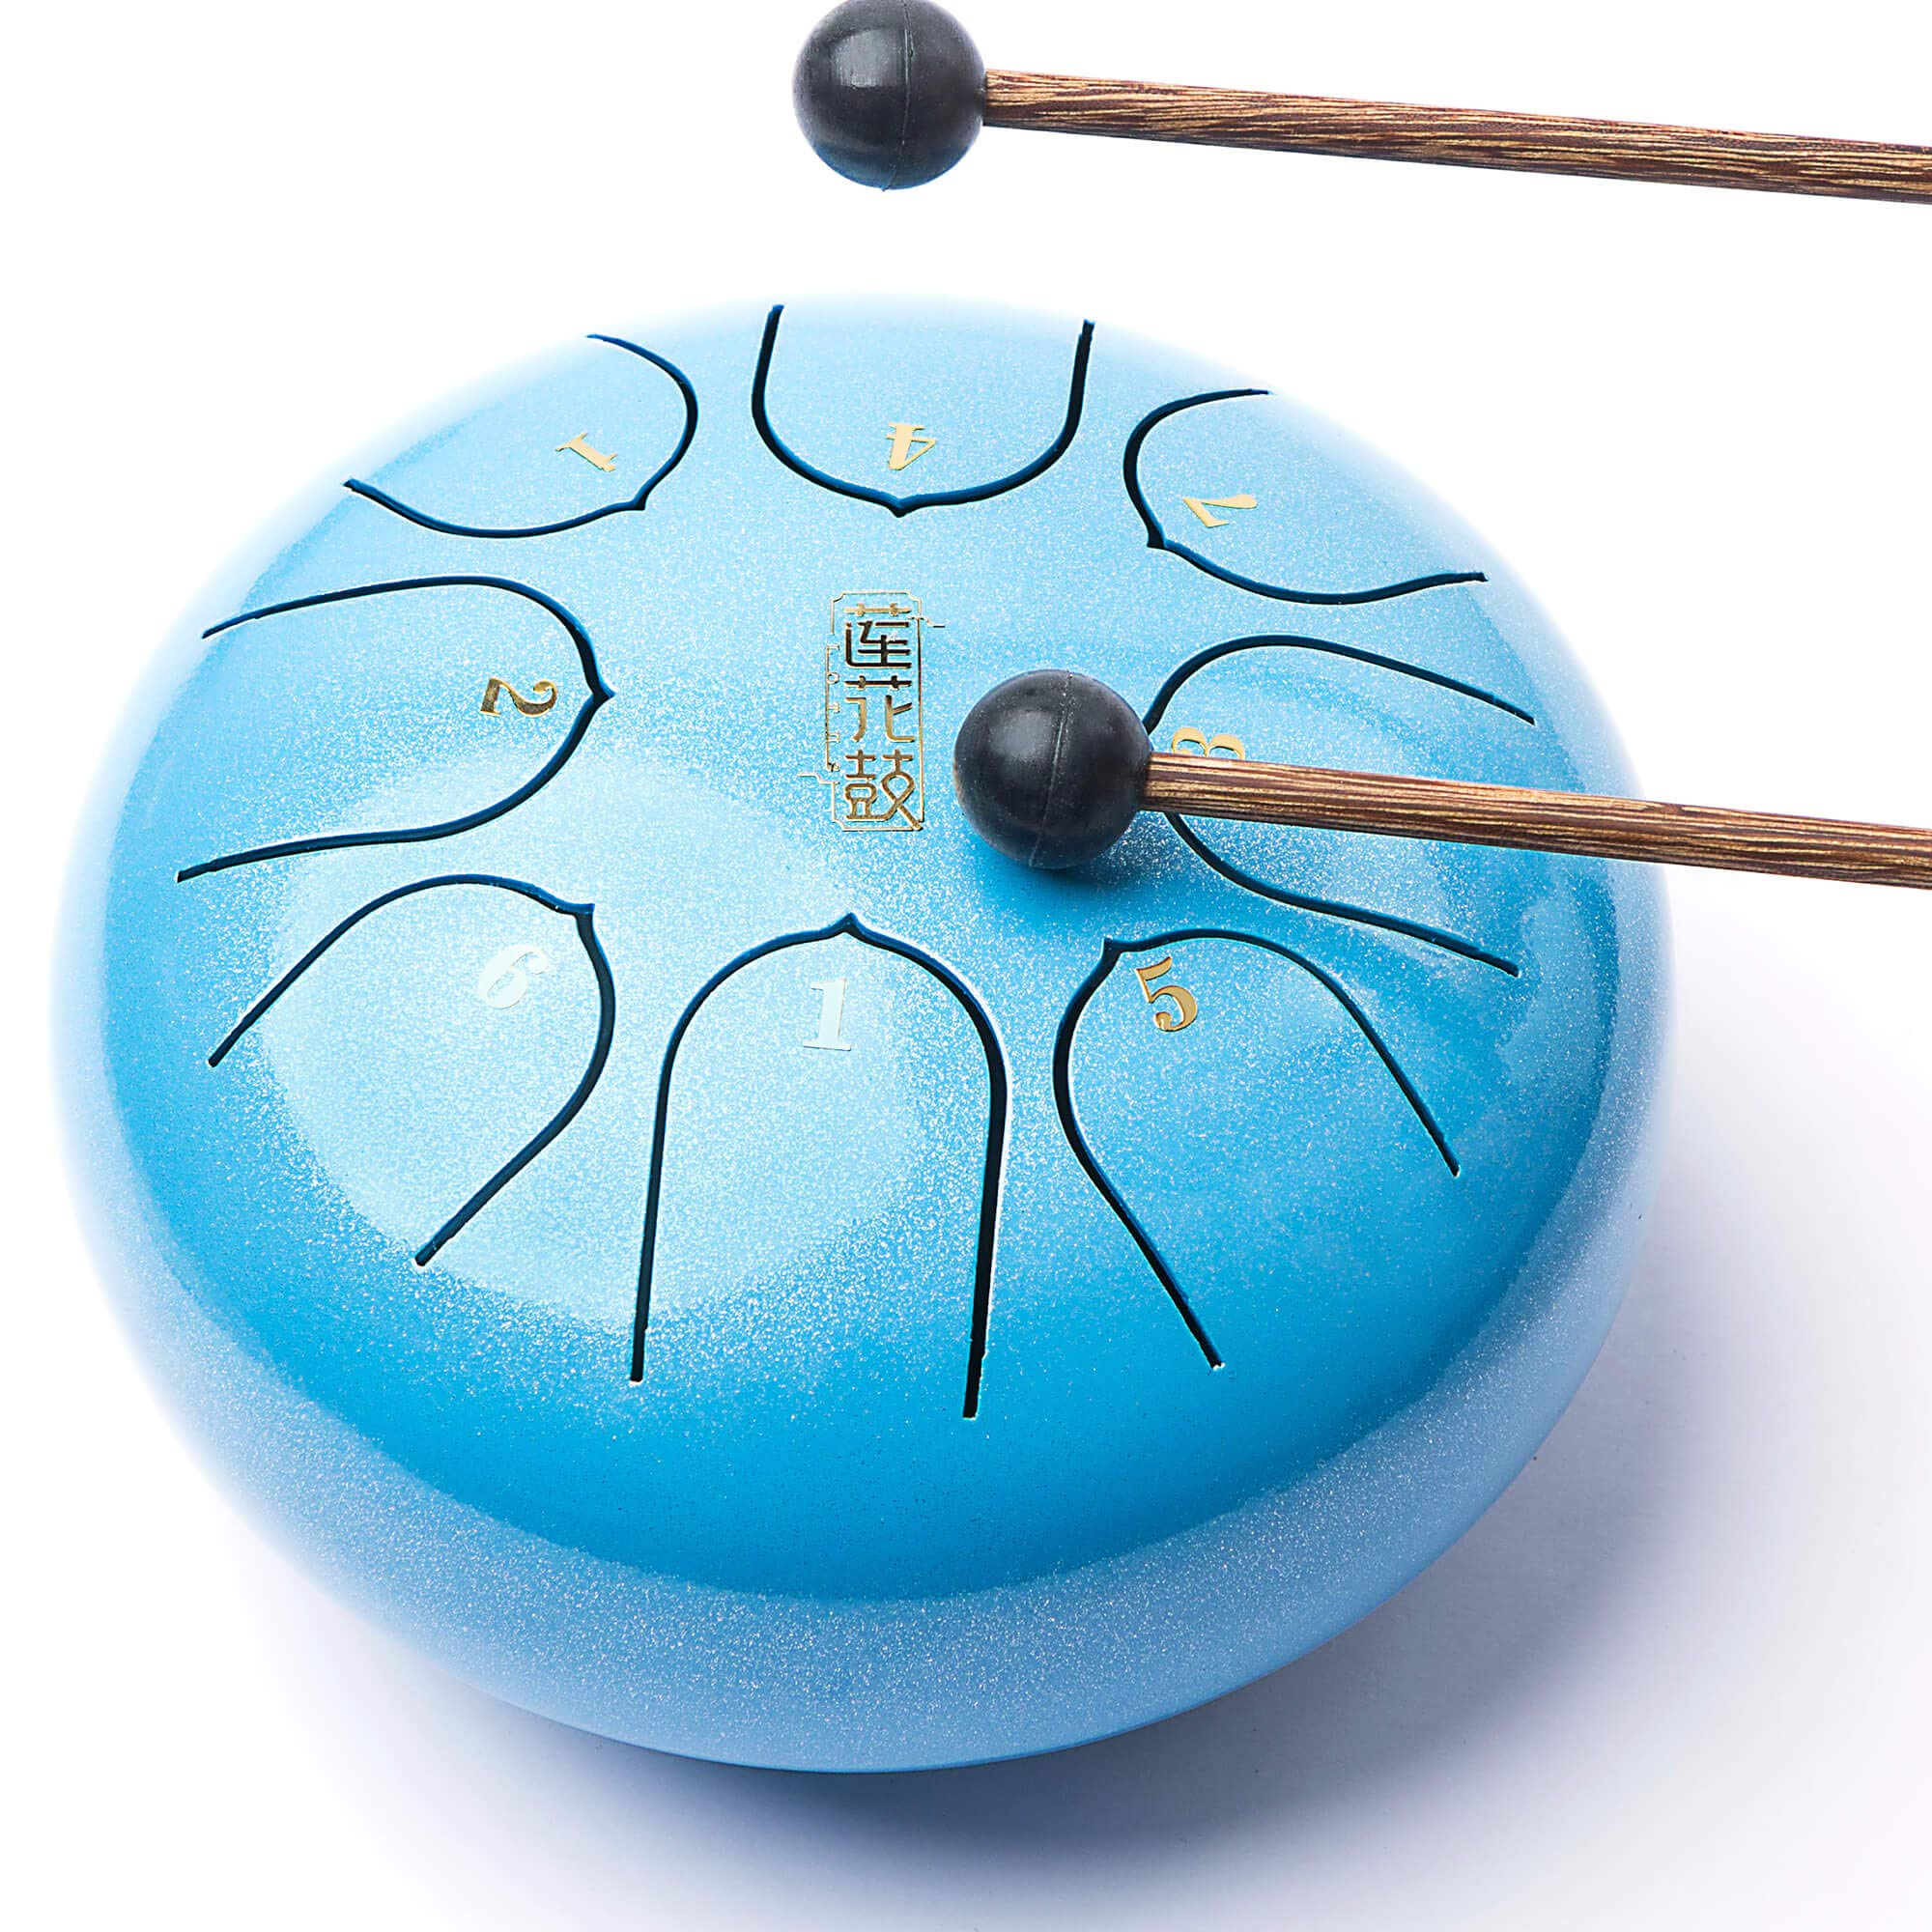 Lronbird Mini Steel Tongue Drum - 8 Notes 6 inches - Kid drum - Percussion Instrument - Handpan Drum with Padded Travel Bag, Book, Mallets, Finger Picks for Music practice and Gift (Blue)